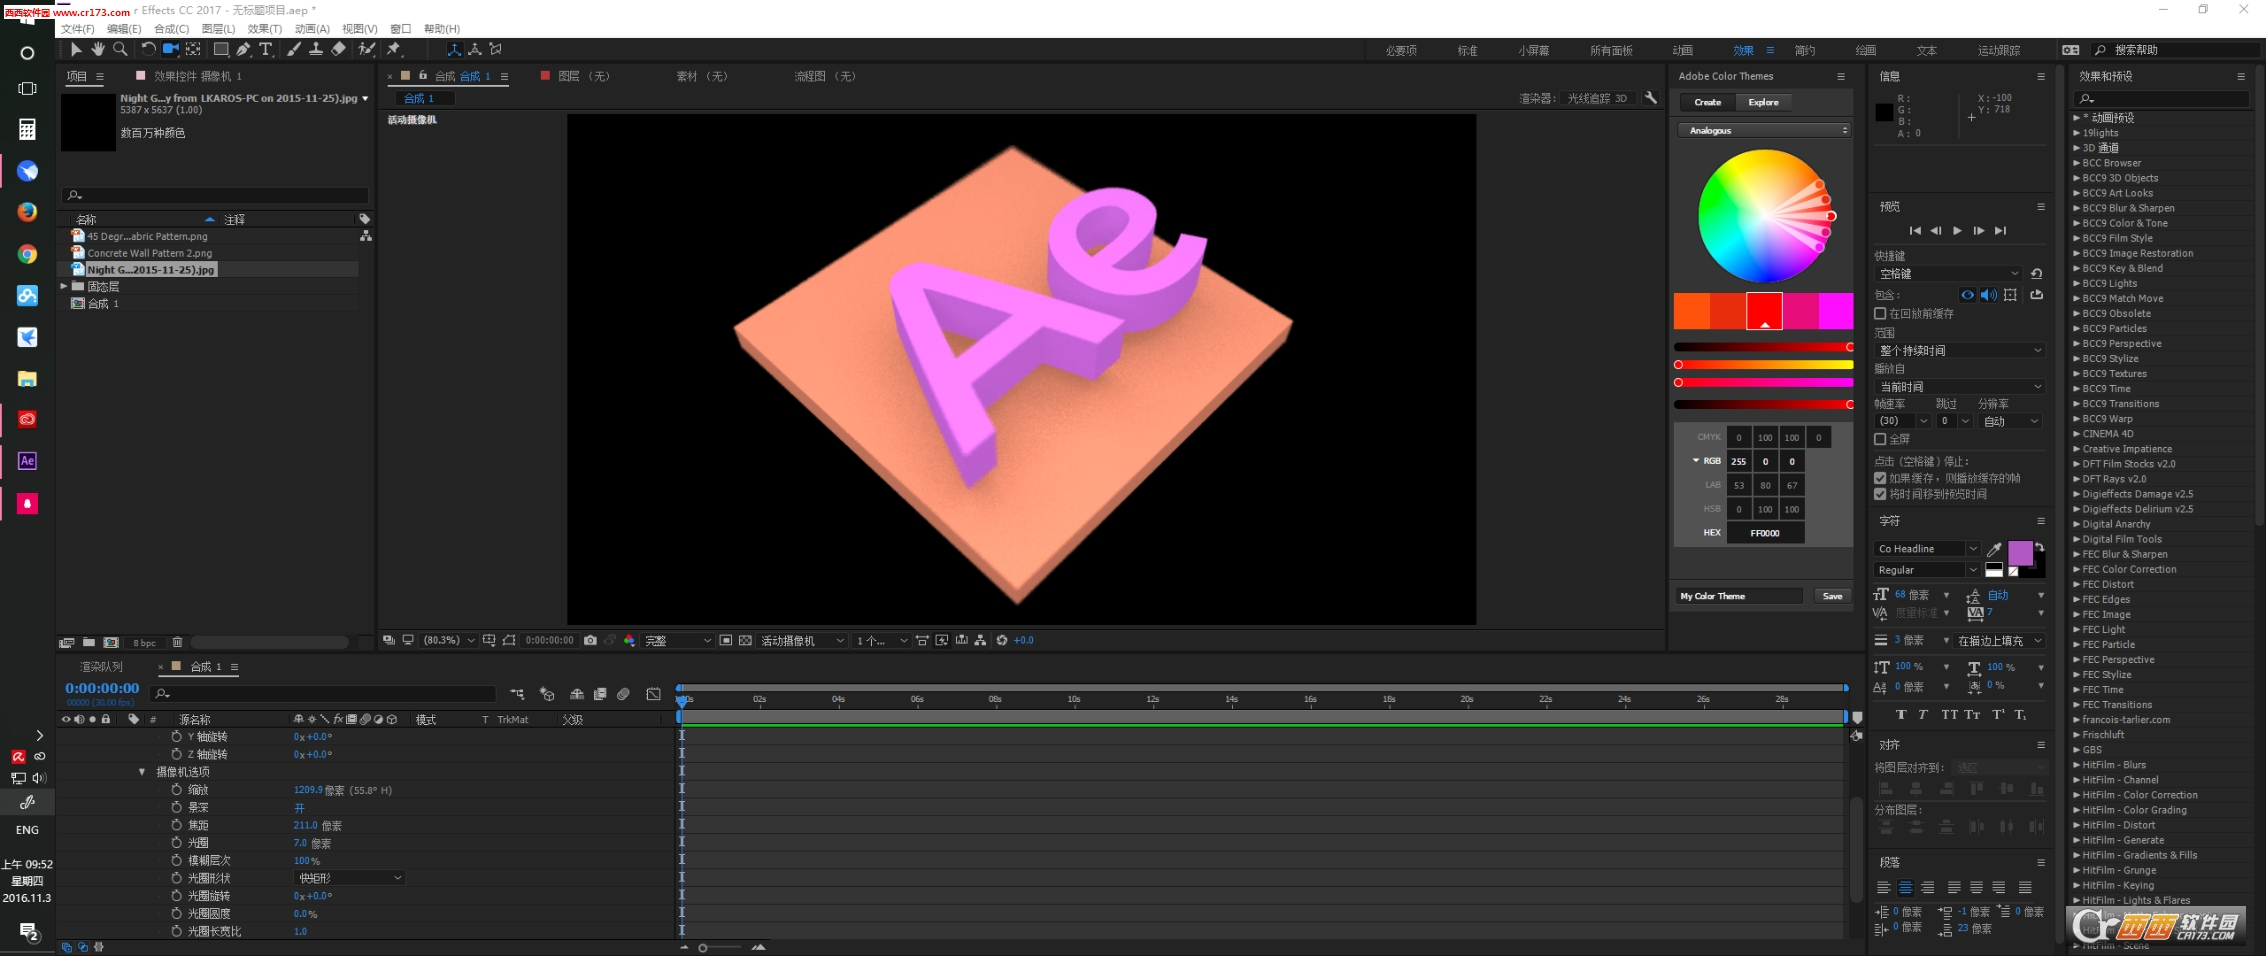 Adobe After Effects CC 2017 v14.0.0 官方中文简体版